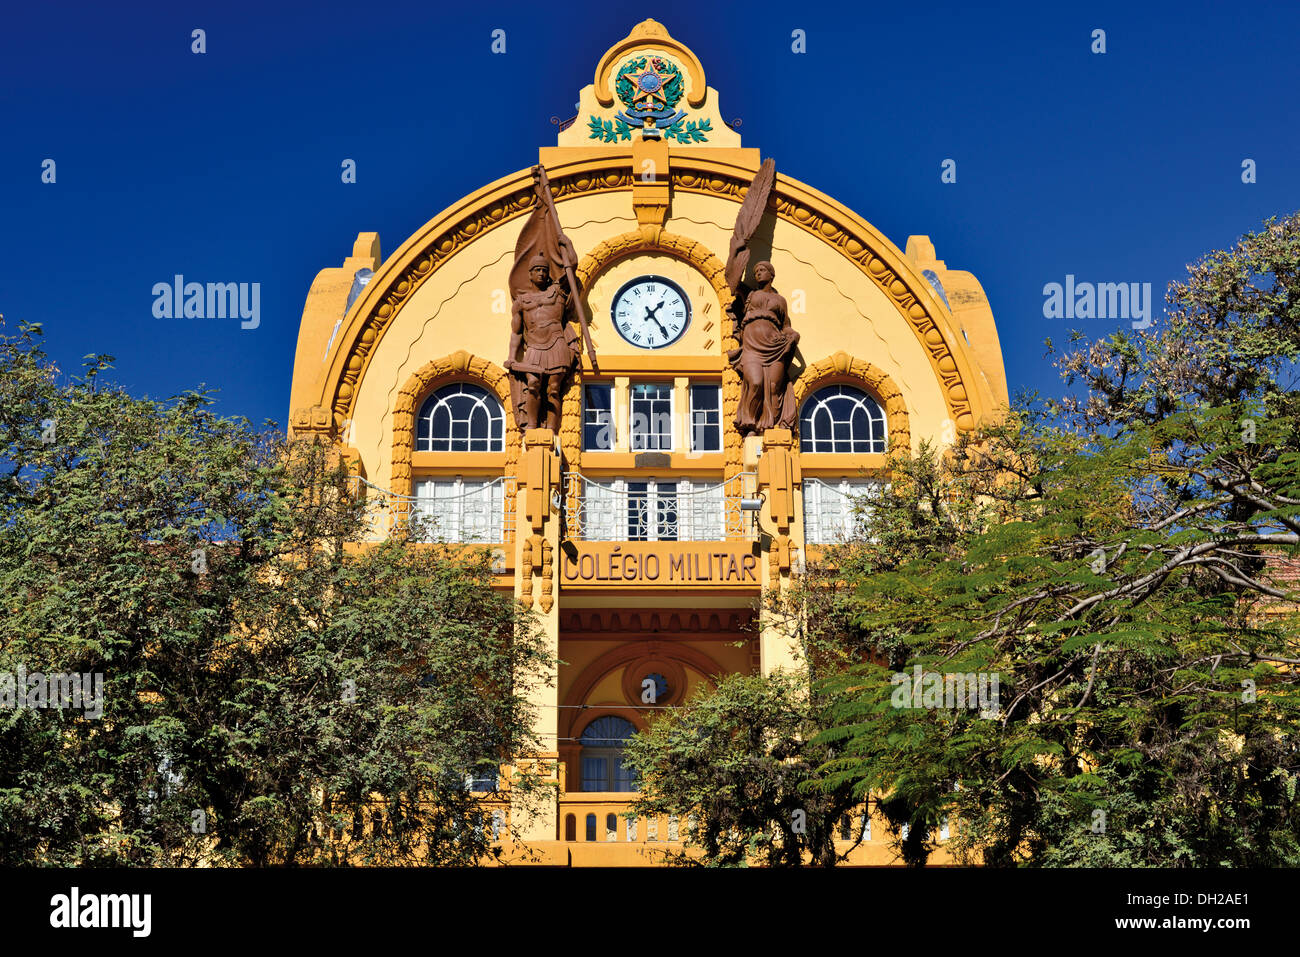 Brazil, Porto Alegre: Detail of the historic Military School building - Stock Image